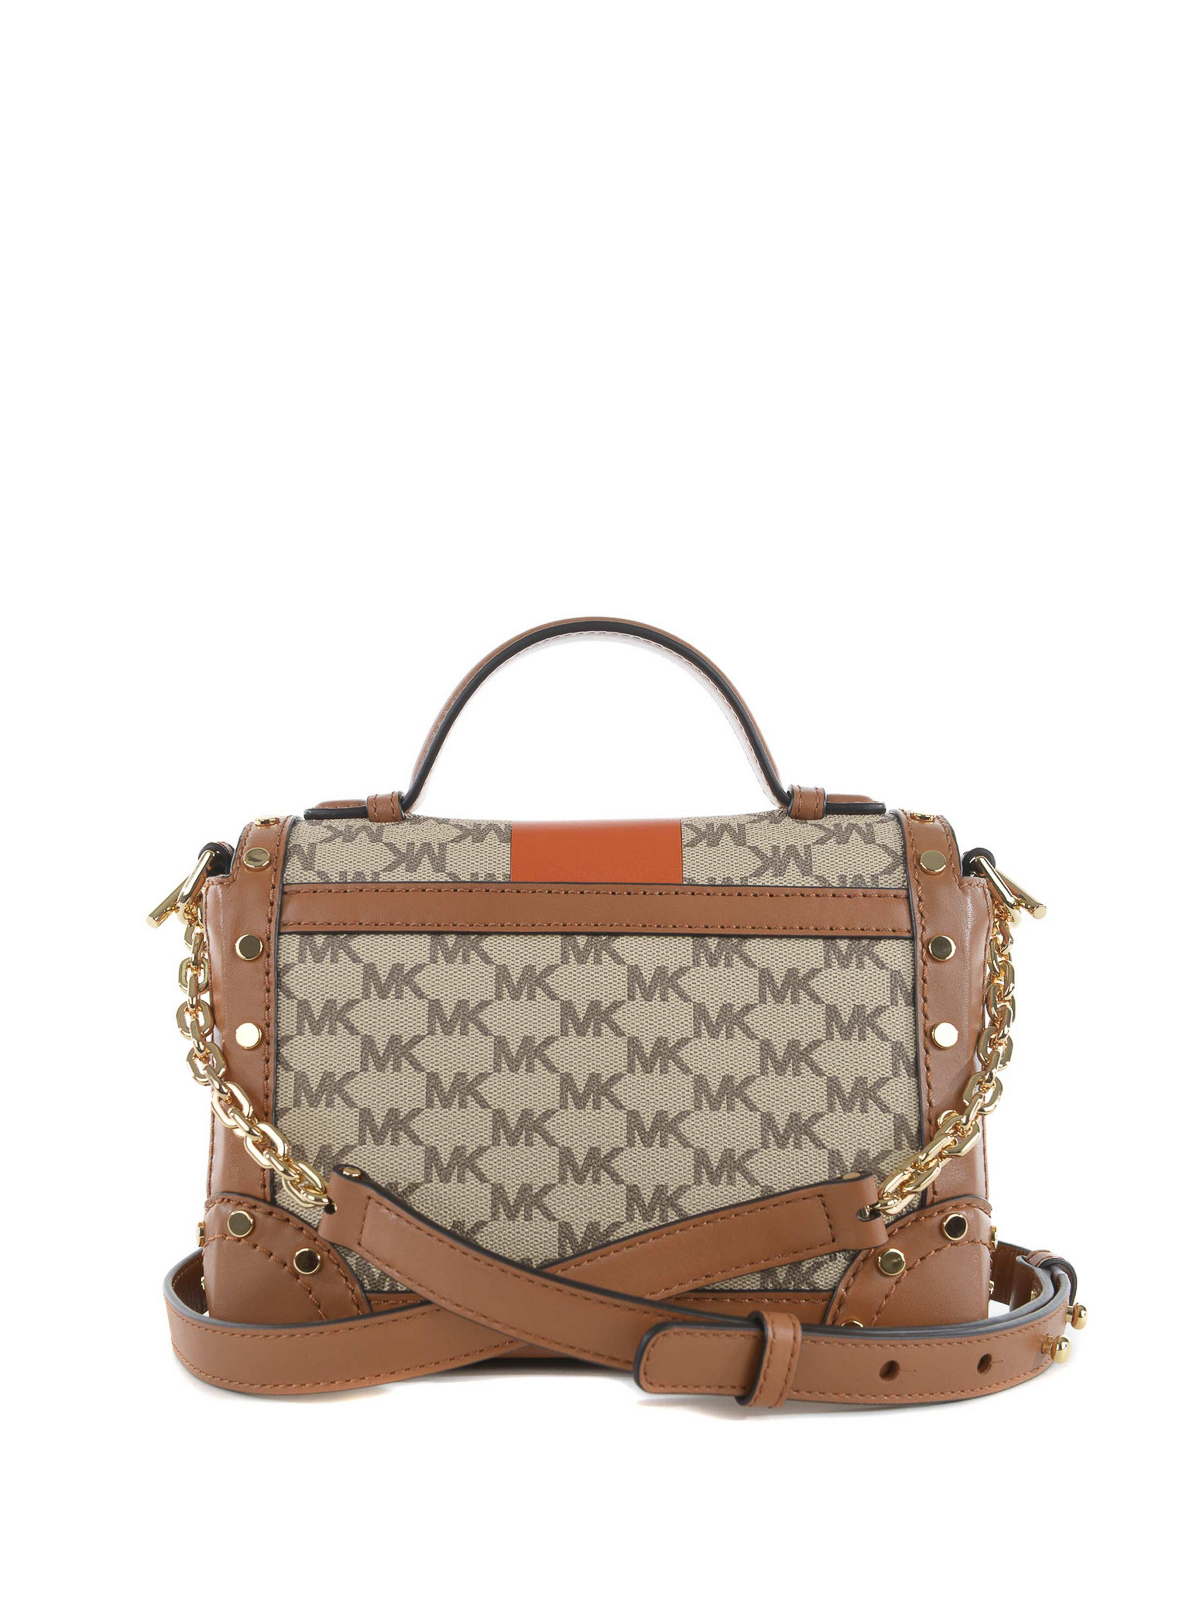 972f5b1bf5b7e iKRIX MICHAEL KORS  cross body bags - Cori small crossbody bag